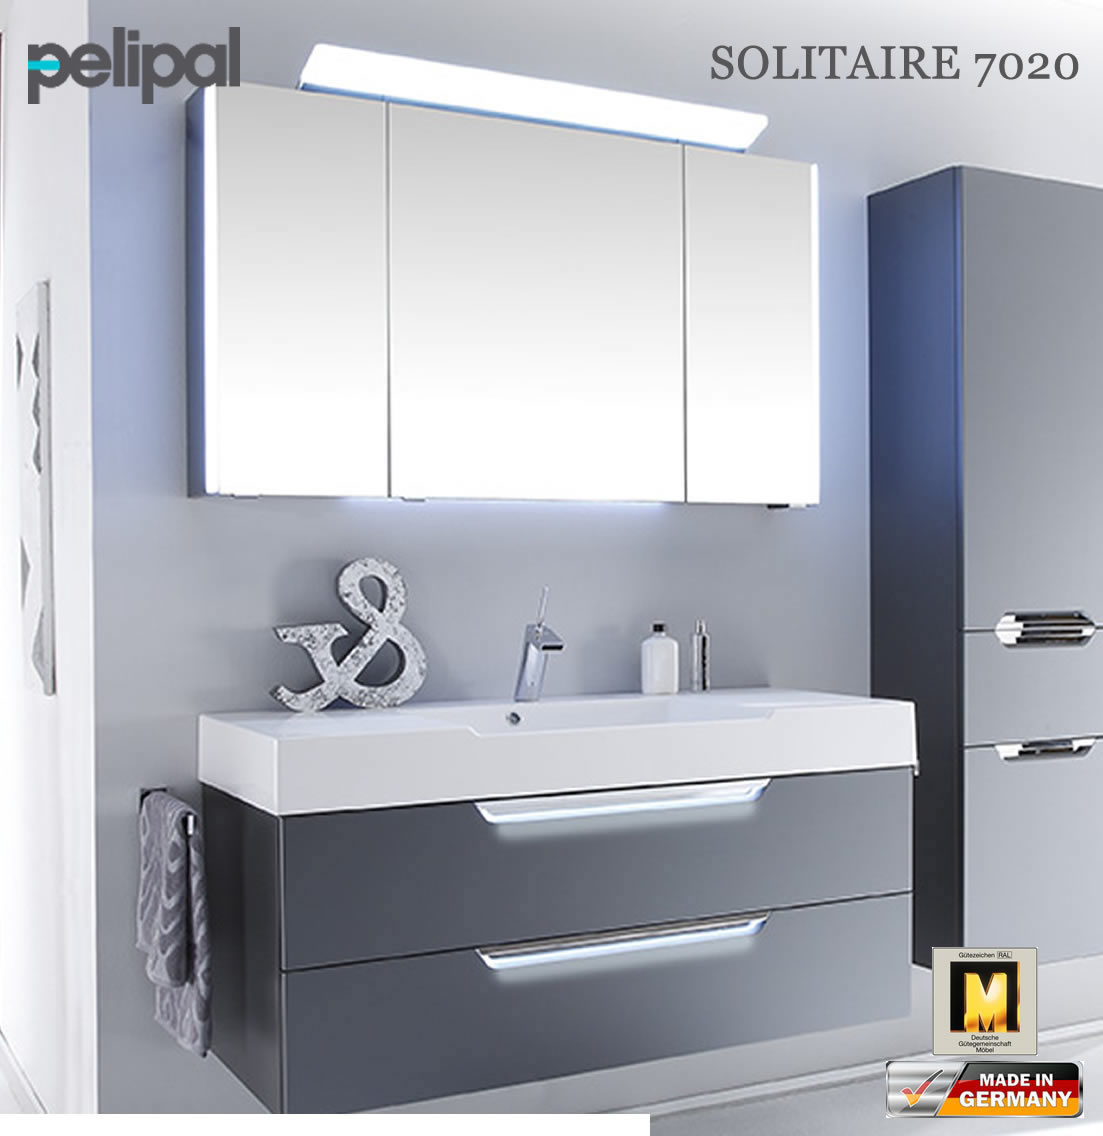 pelipal solitaire 7020 badm bel set mit 1200 mm waschtisch v2 5 impuls home. Black Bedroom Furniture Sets. Home Design Ideas